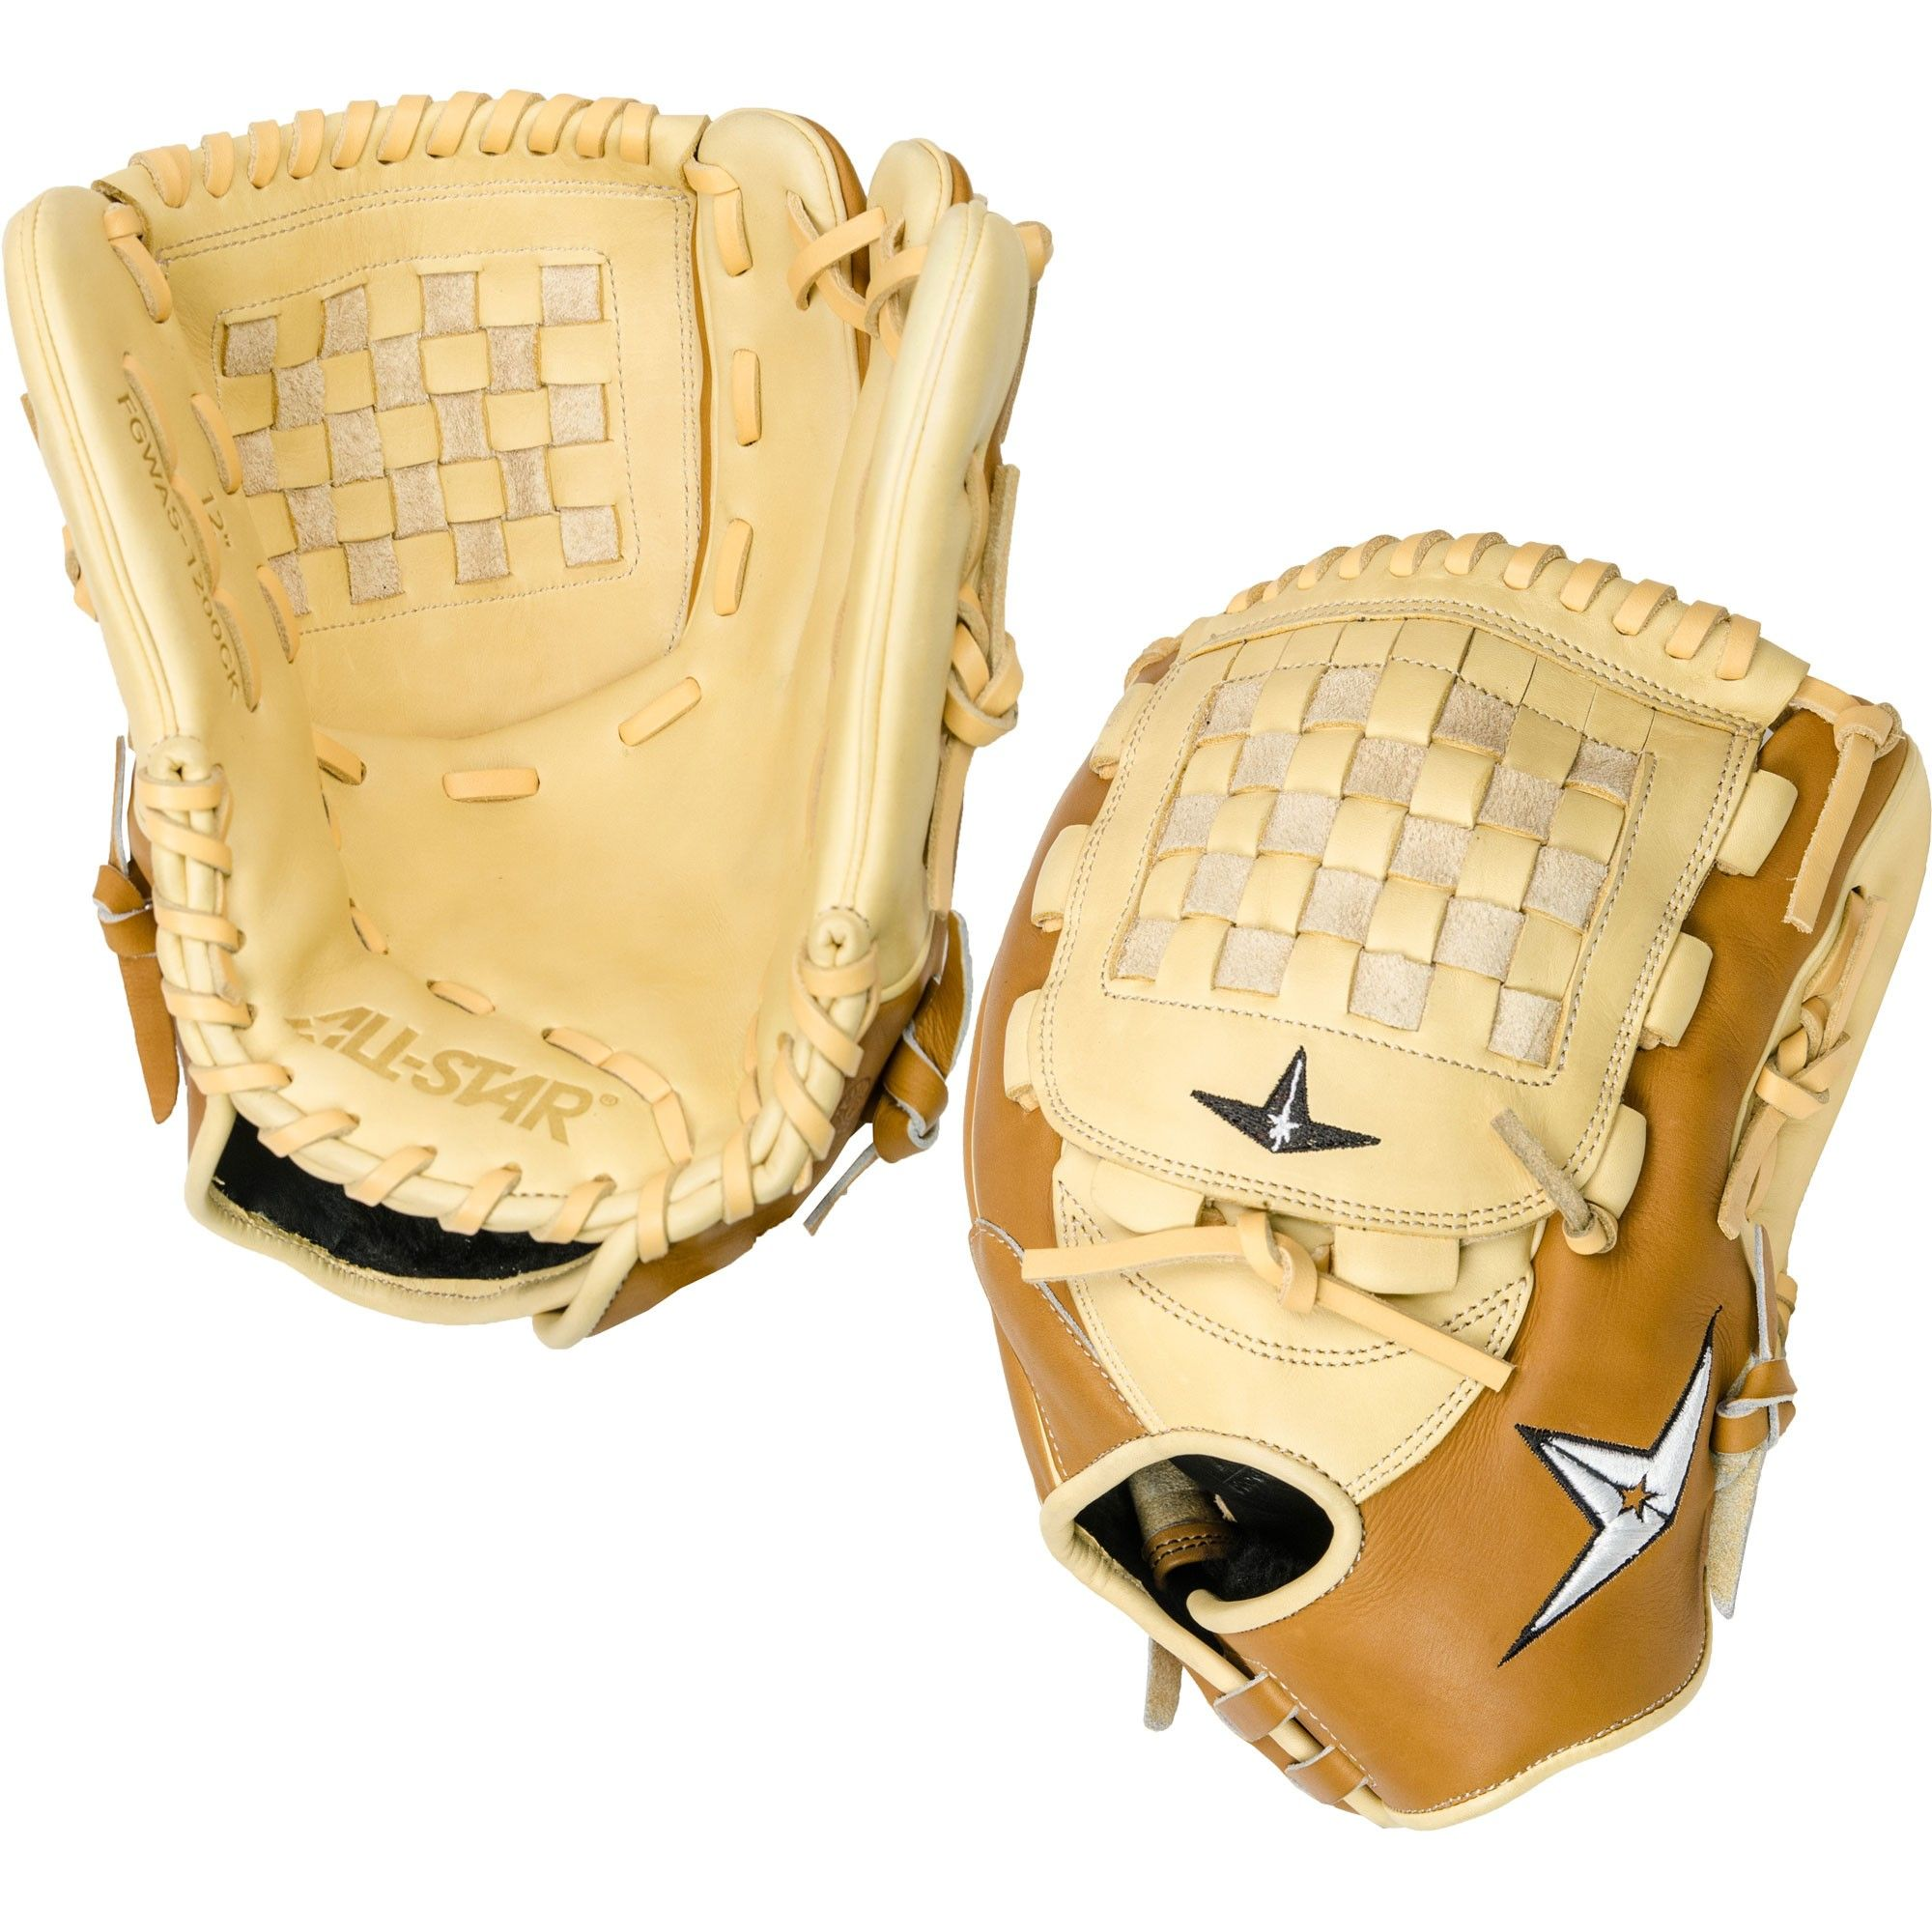 All Star Pro Fastpitch 12 Fgwas 1200ck Fastpitch Softball Glove Right Hand Thrower Fastpitch Softball Gloves Softball Gloves Fastpitch